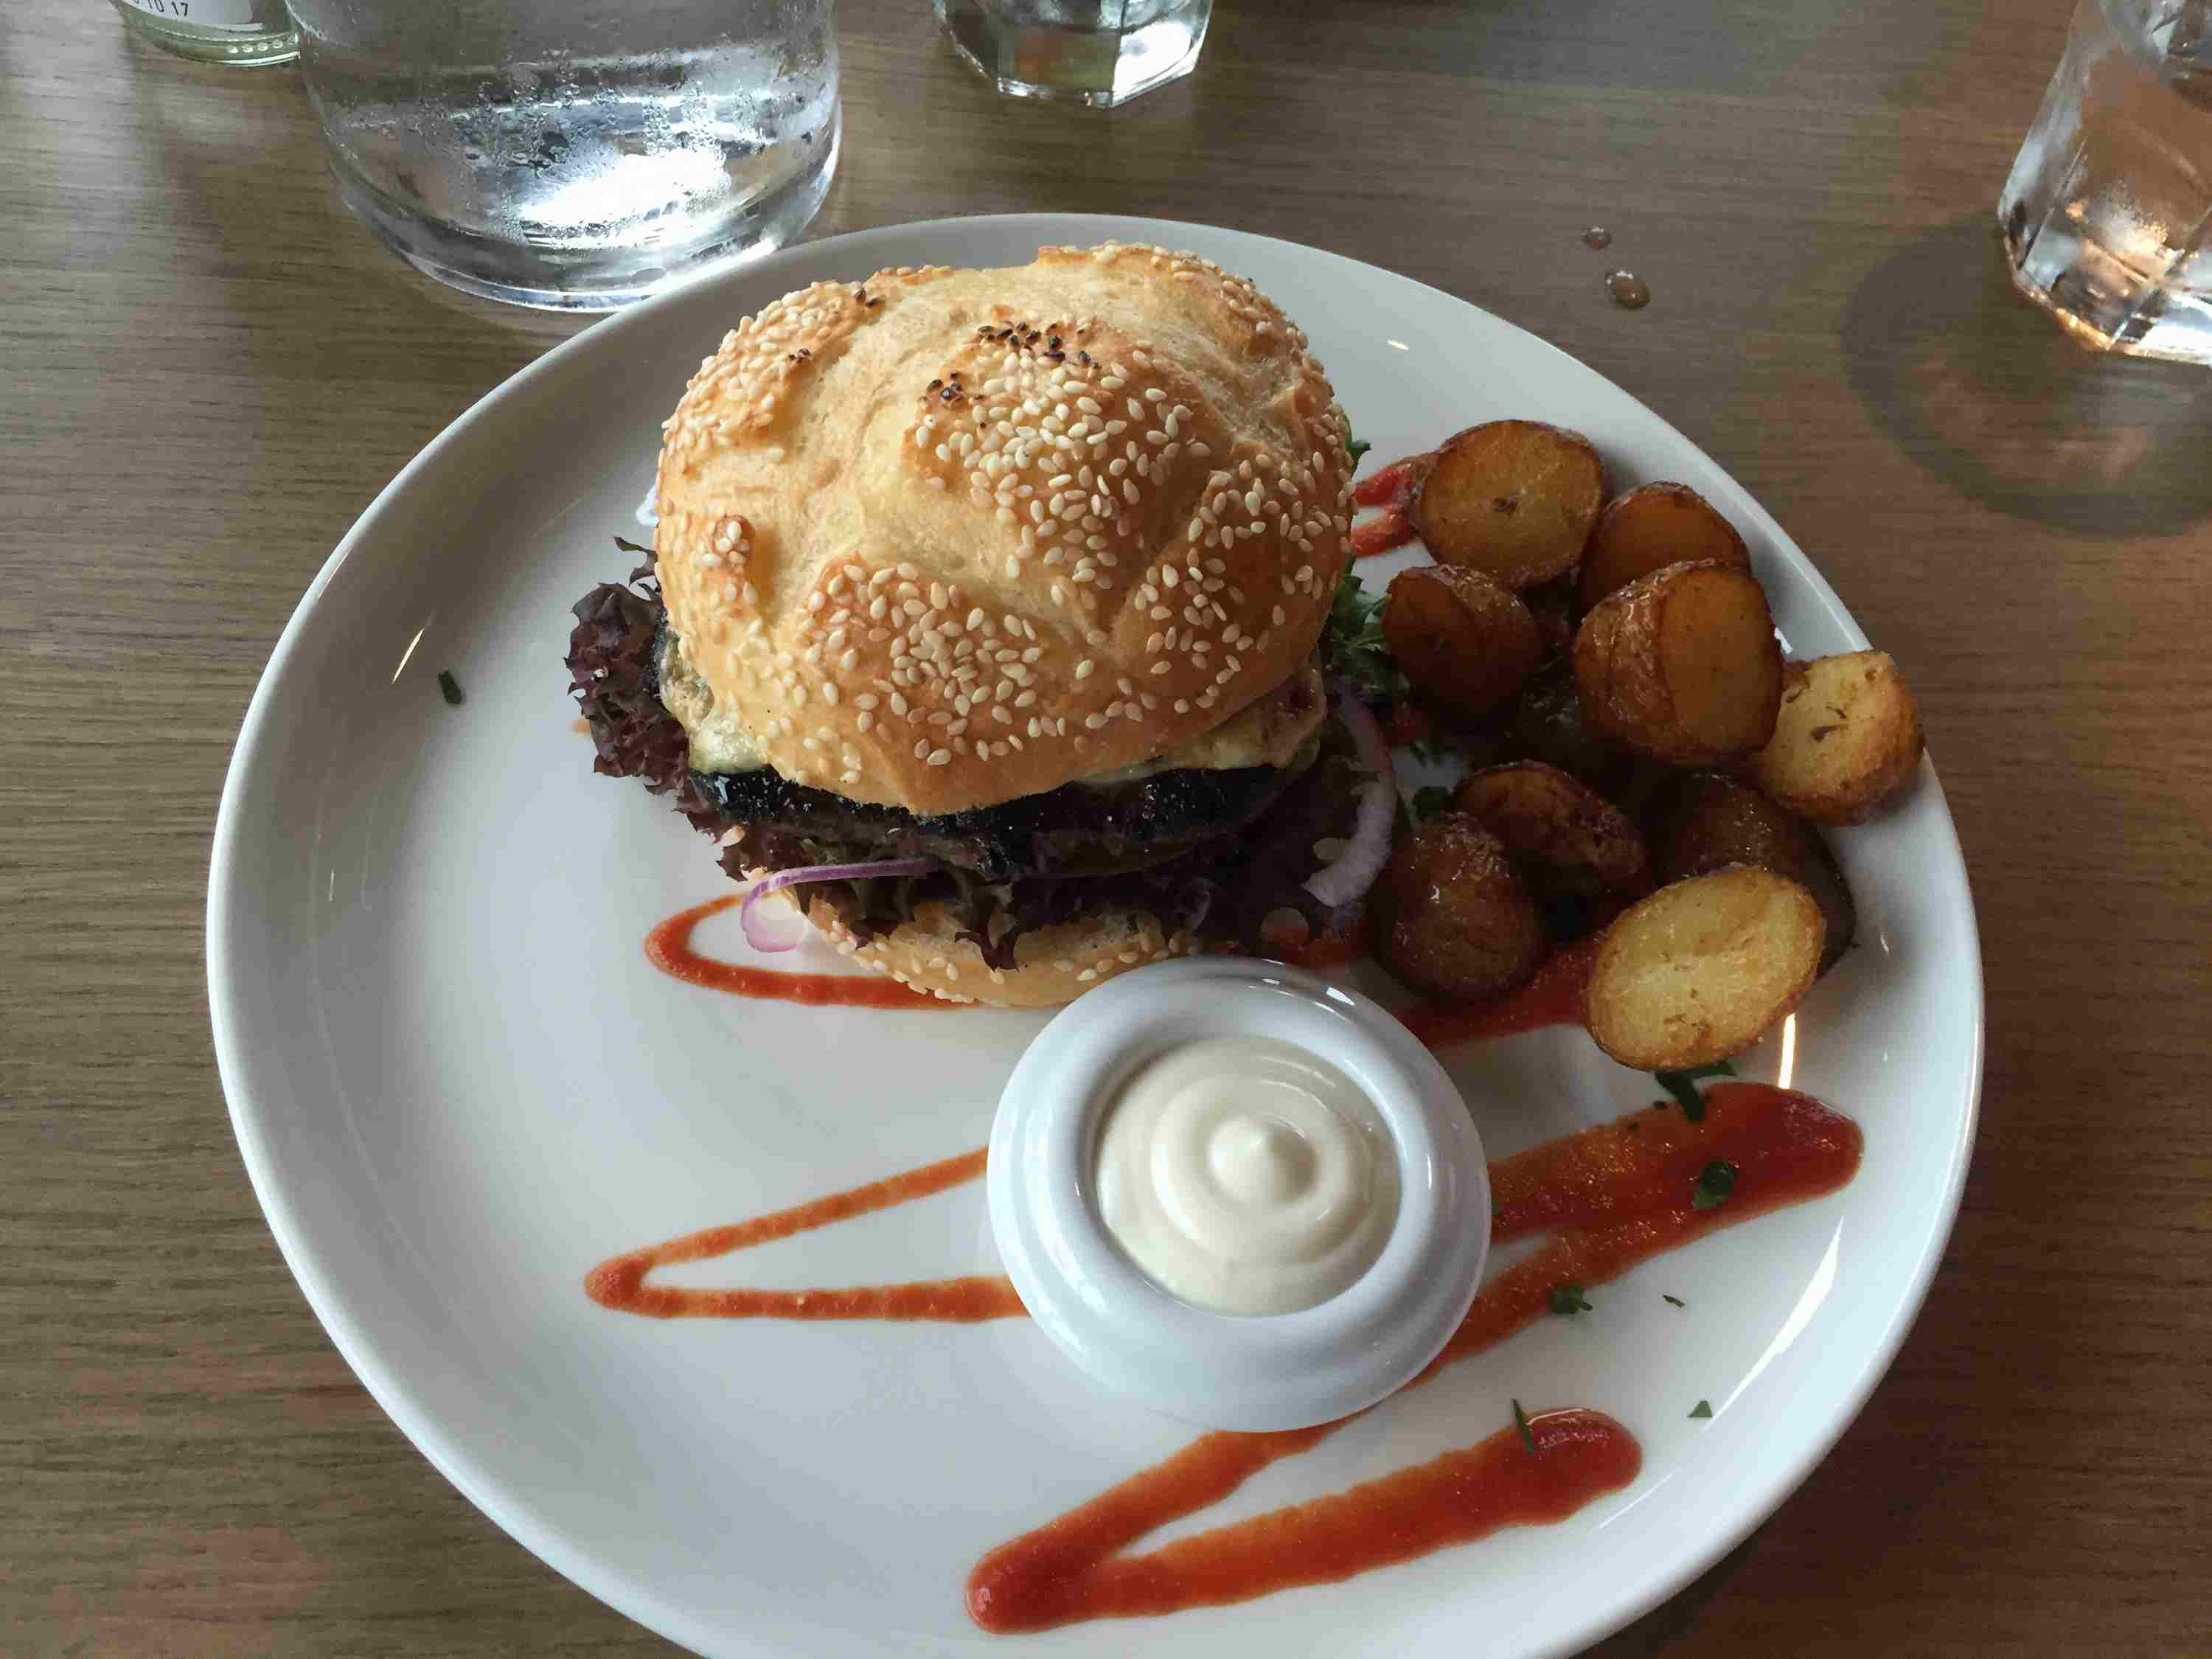 Burger on plate with potatoes and side of white sauce